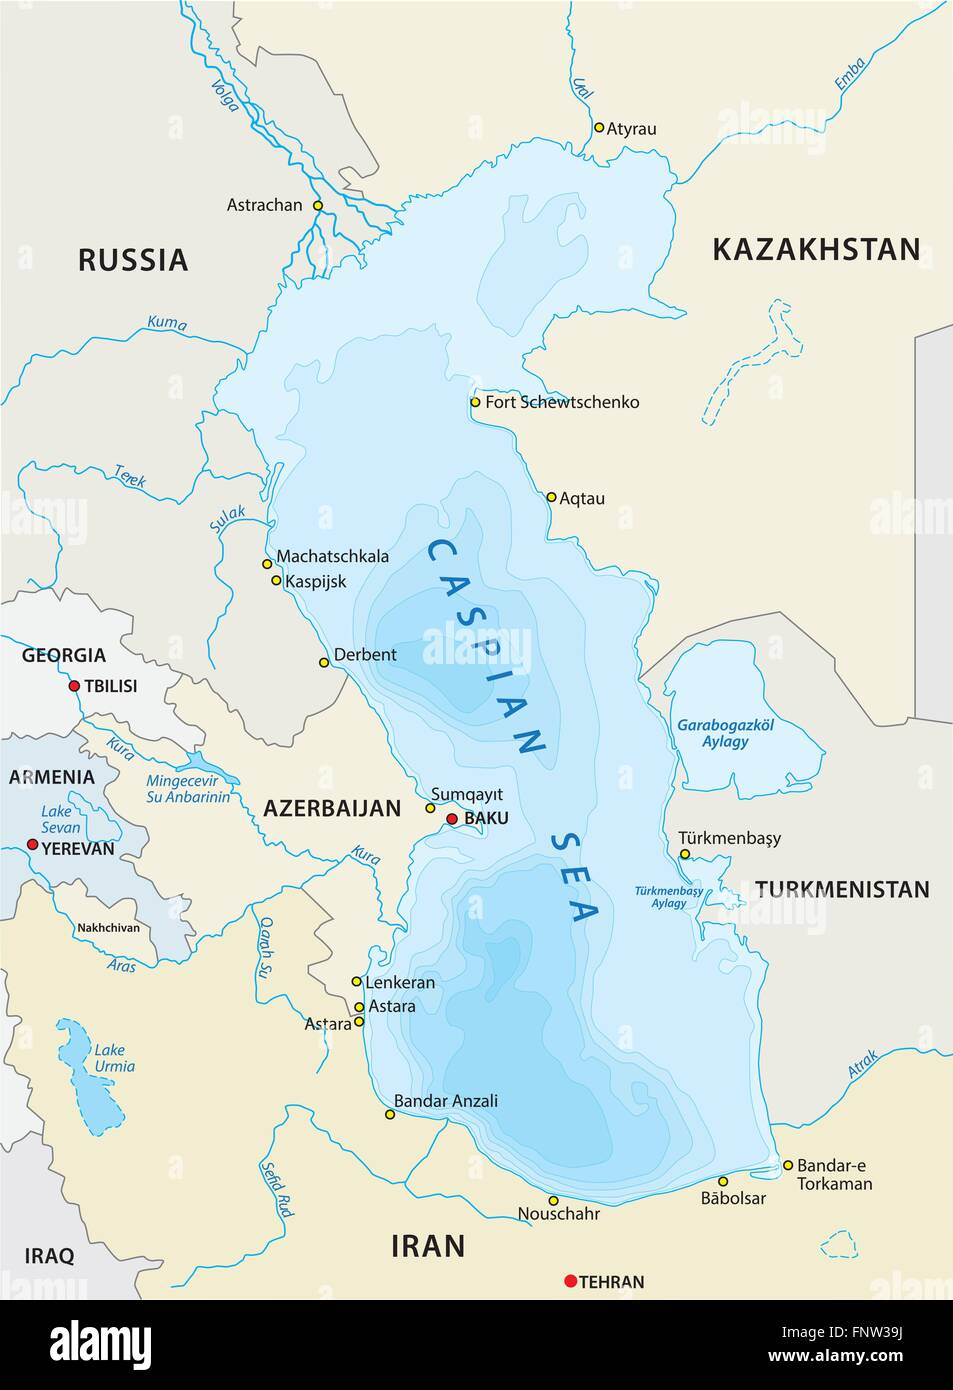 Map Of The Caspian Sea Stock Photos & Map Of The Caspian Sea ...